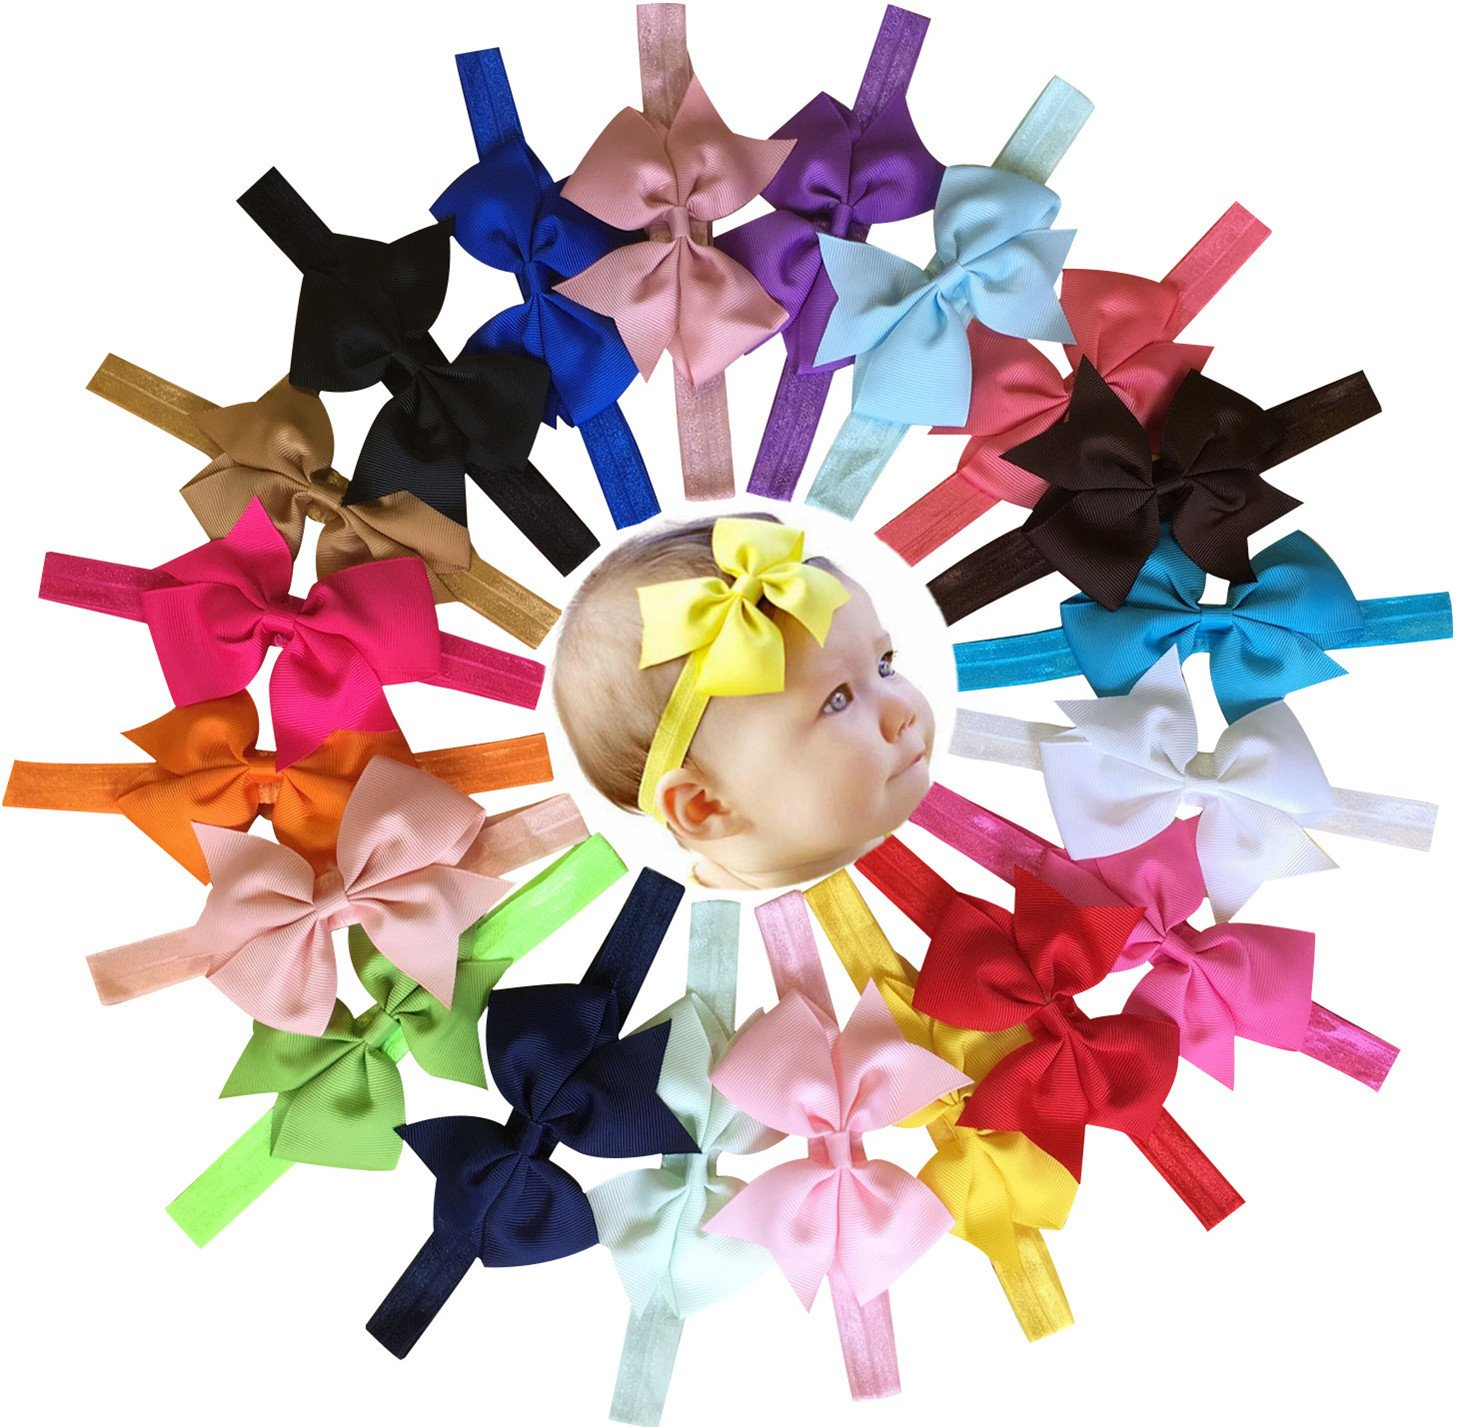 Qandsweet 20pcs Baby Girls Headbands and Forked Tail Bow Photography HD4